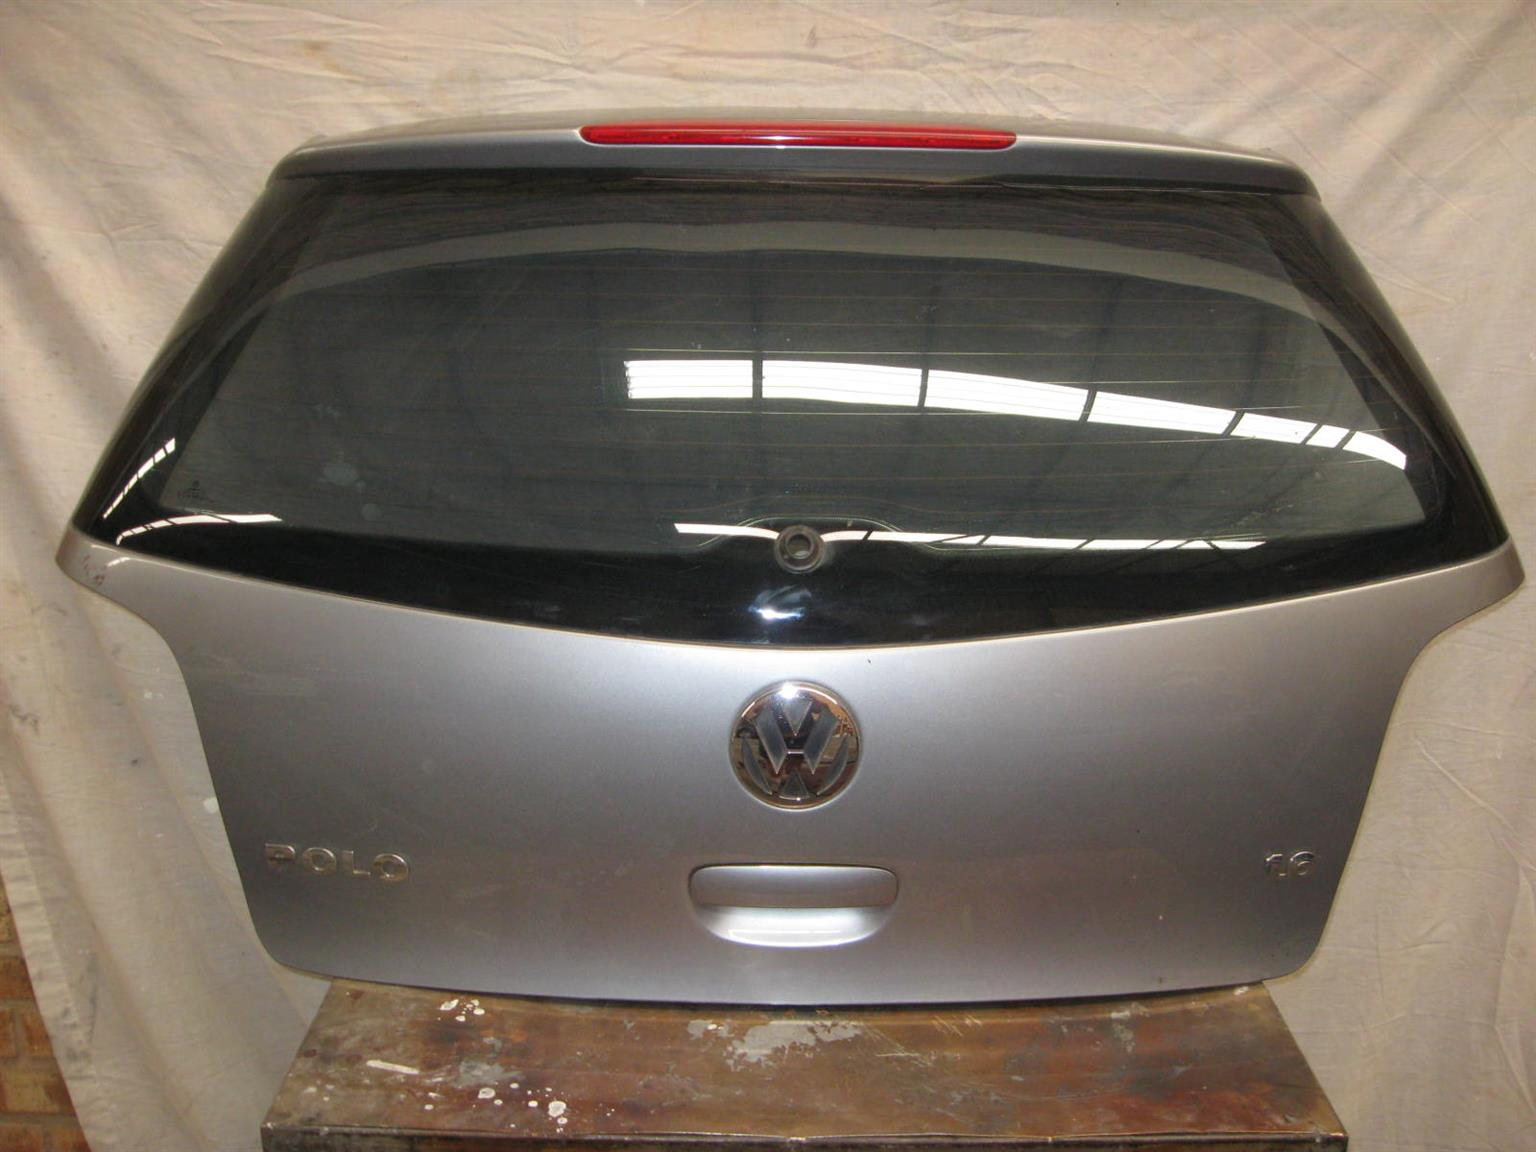 2008 VW Polo Tailgate and Back bumper